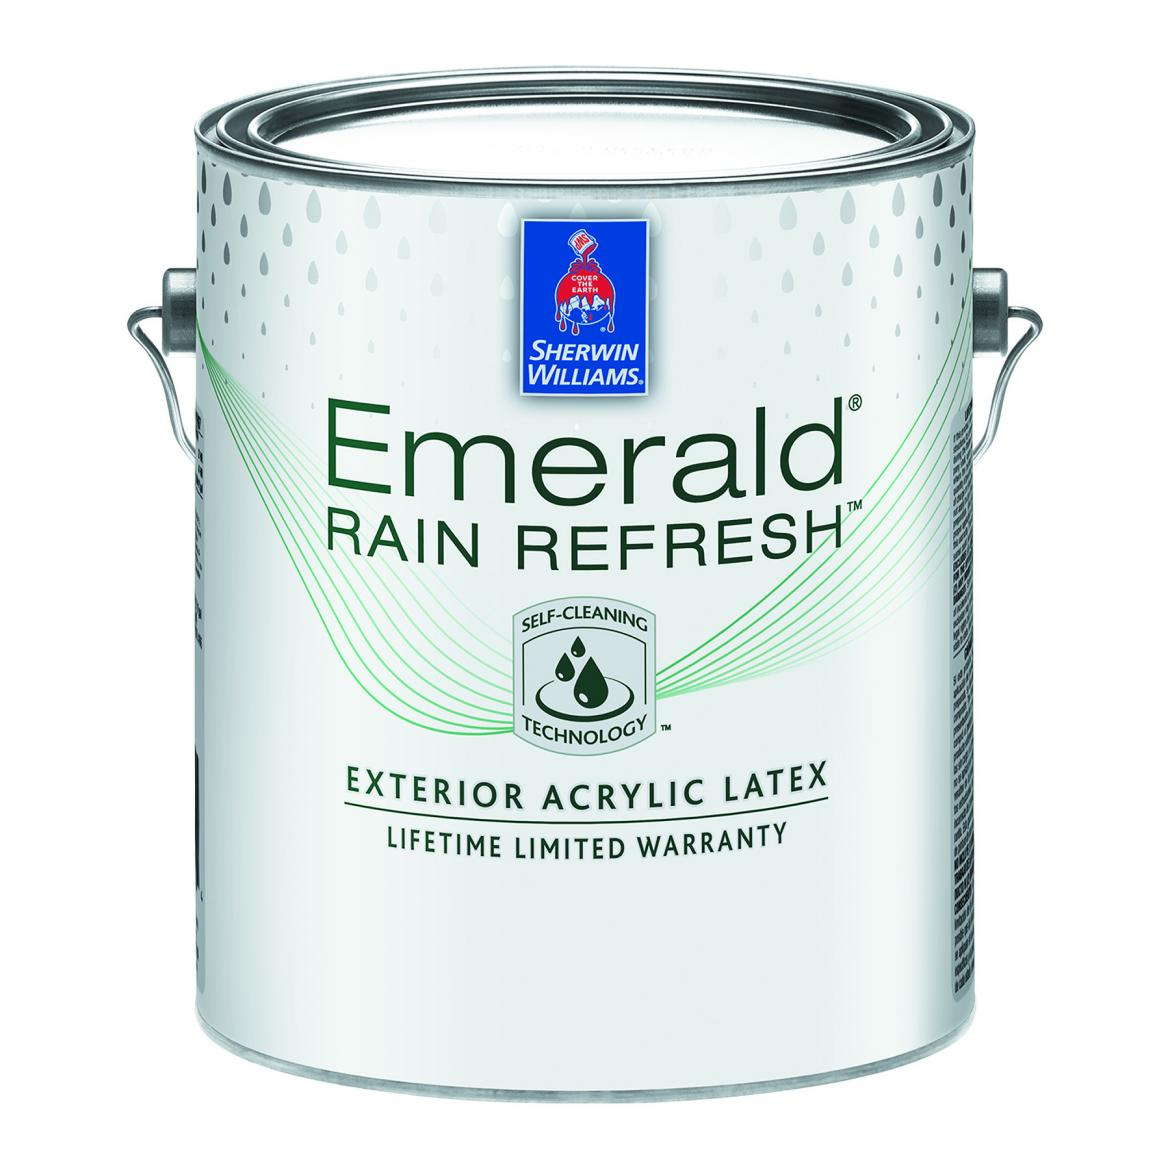 Sherwin Williams Emerald Rain Refresh Exterior Acrylic Latex Paint